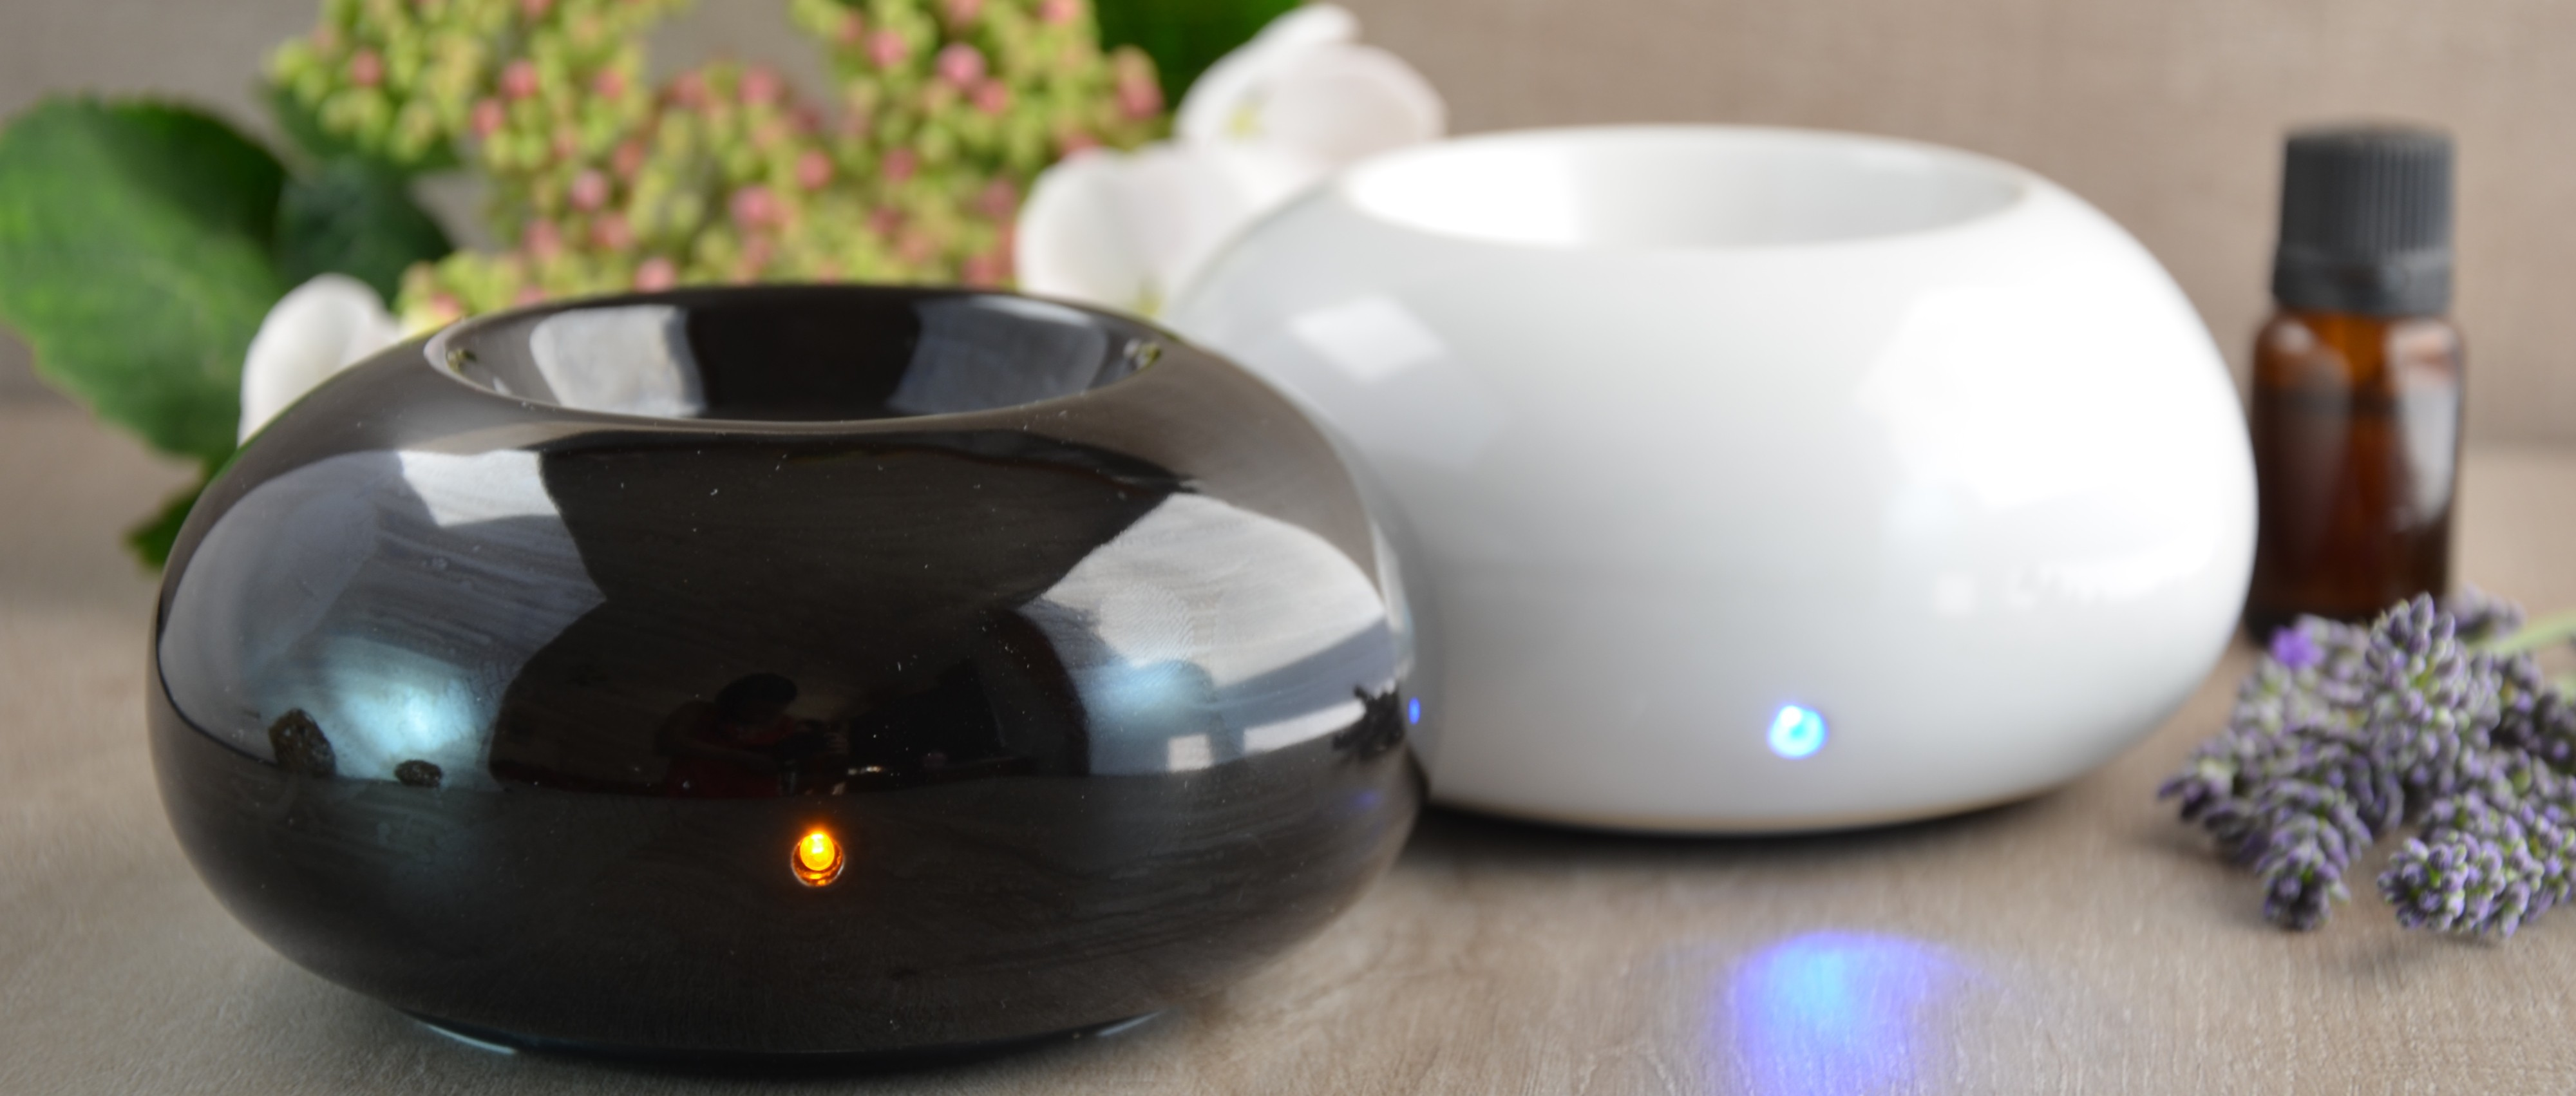 Aroma diffuser by gentle heat